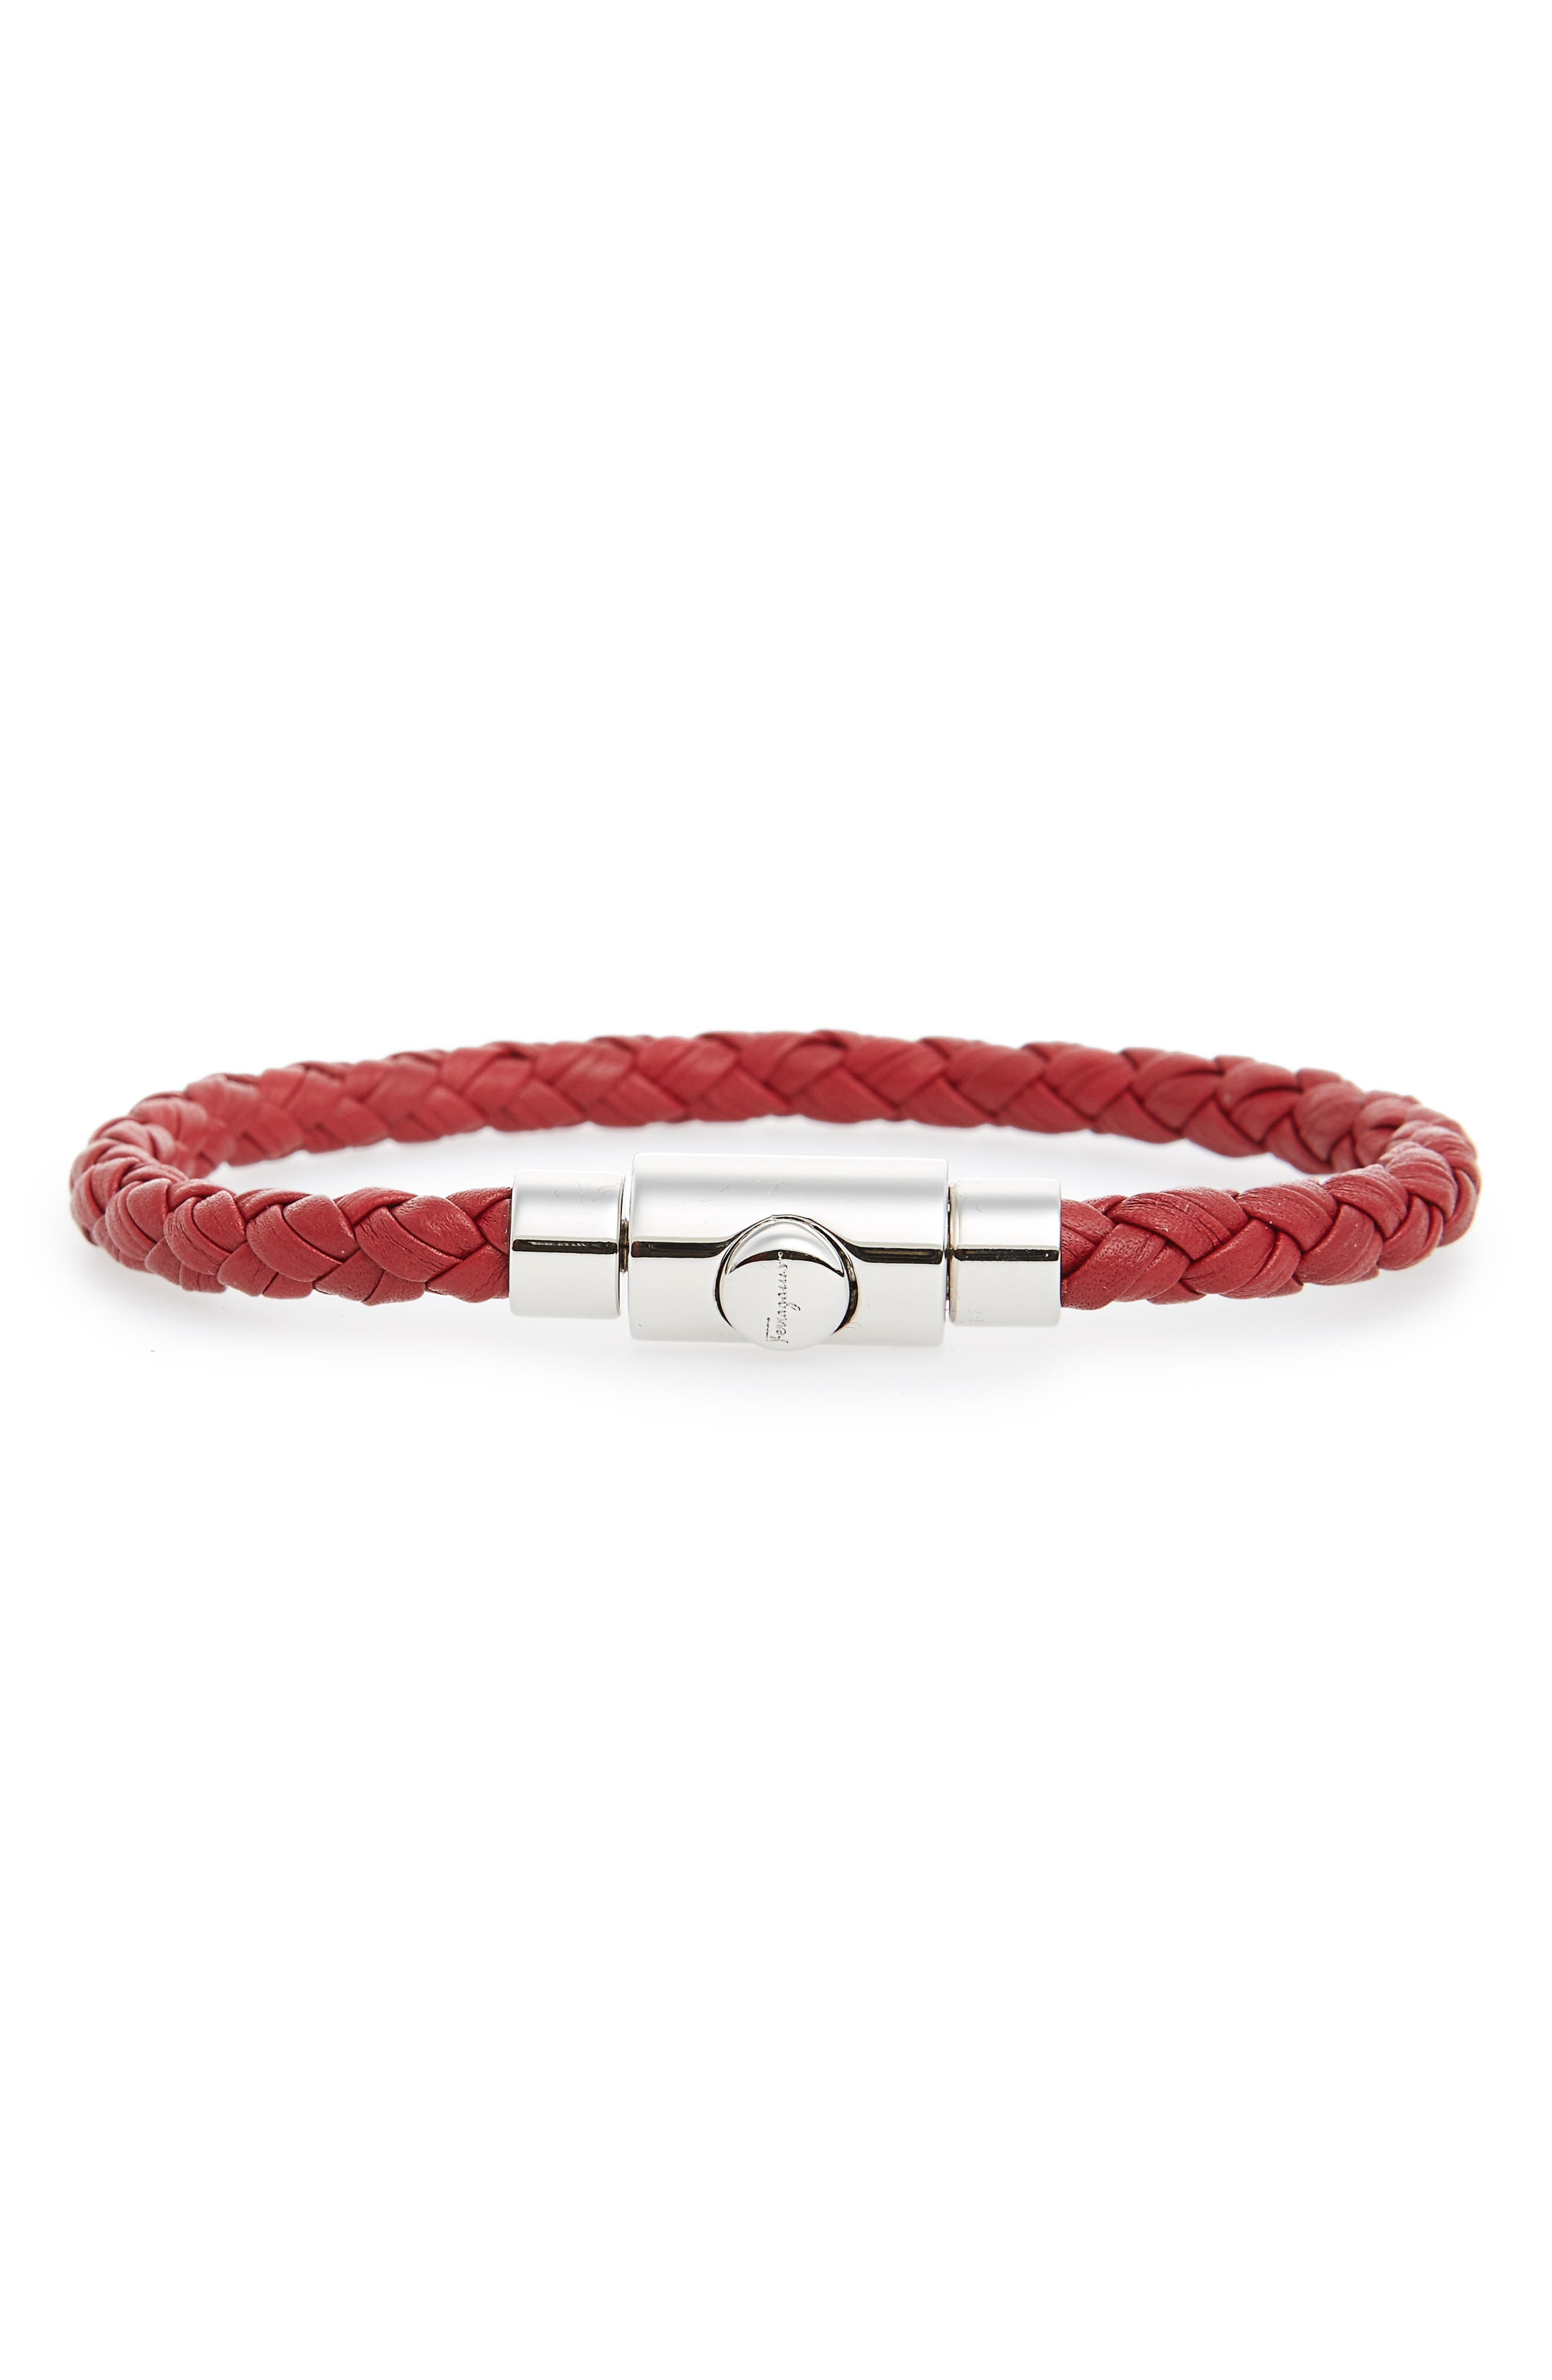 Braided Leather Bracelet,                         Main,                         color, Red